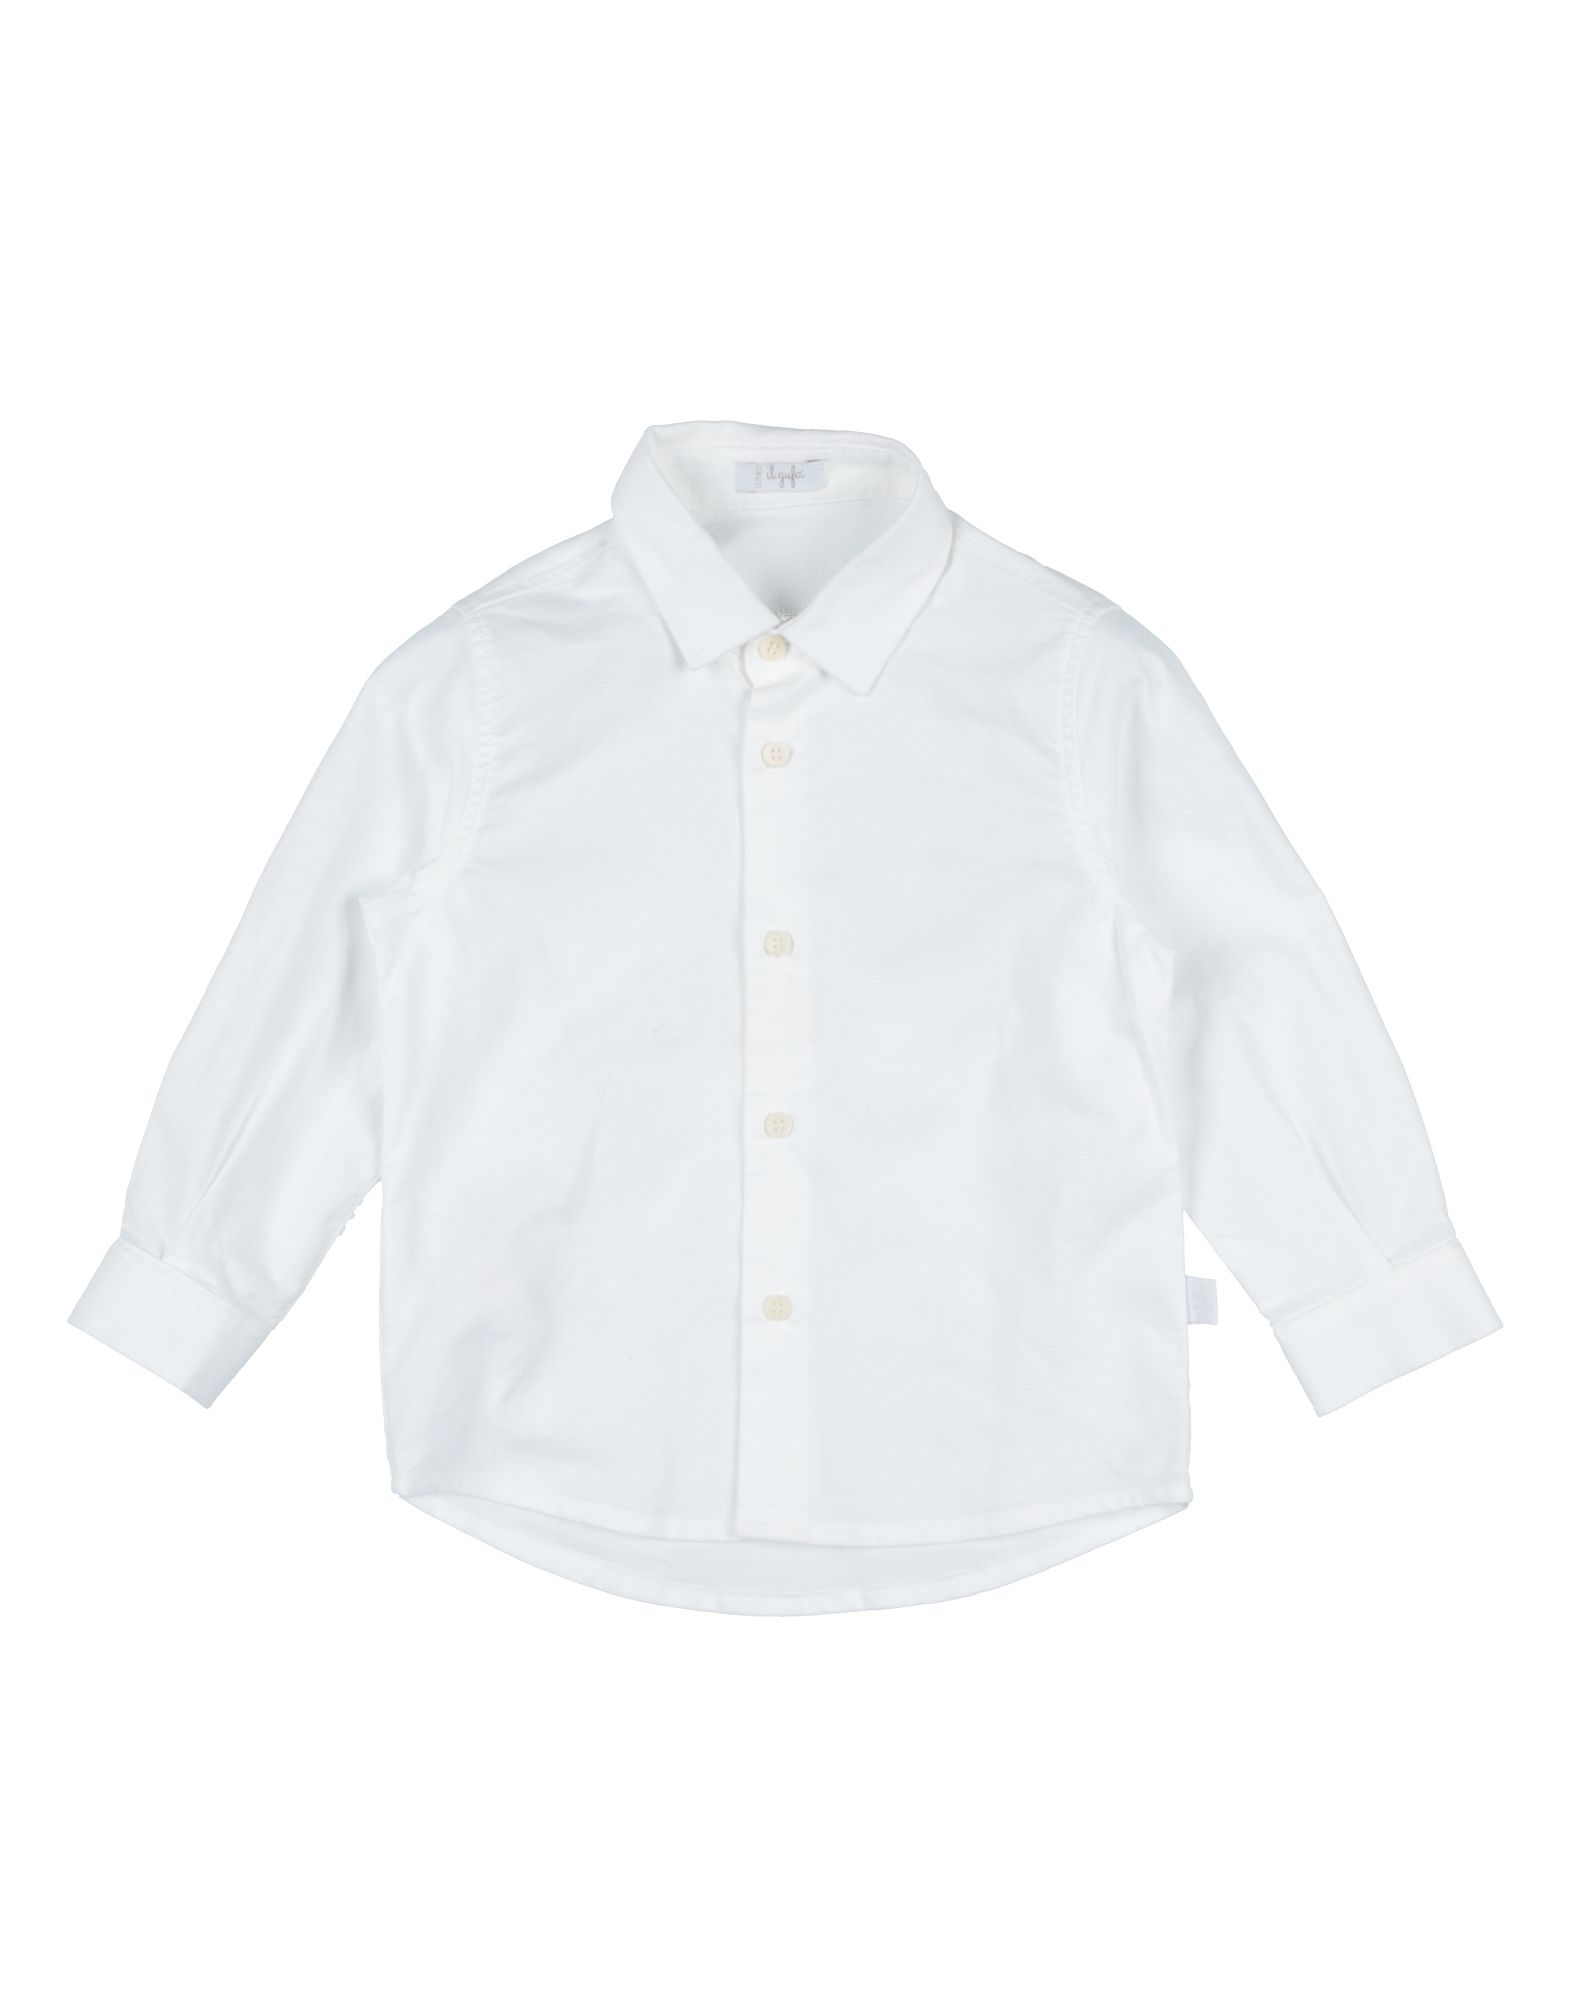 IL GUFO Solid Color Shirt in White